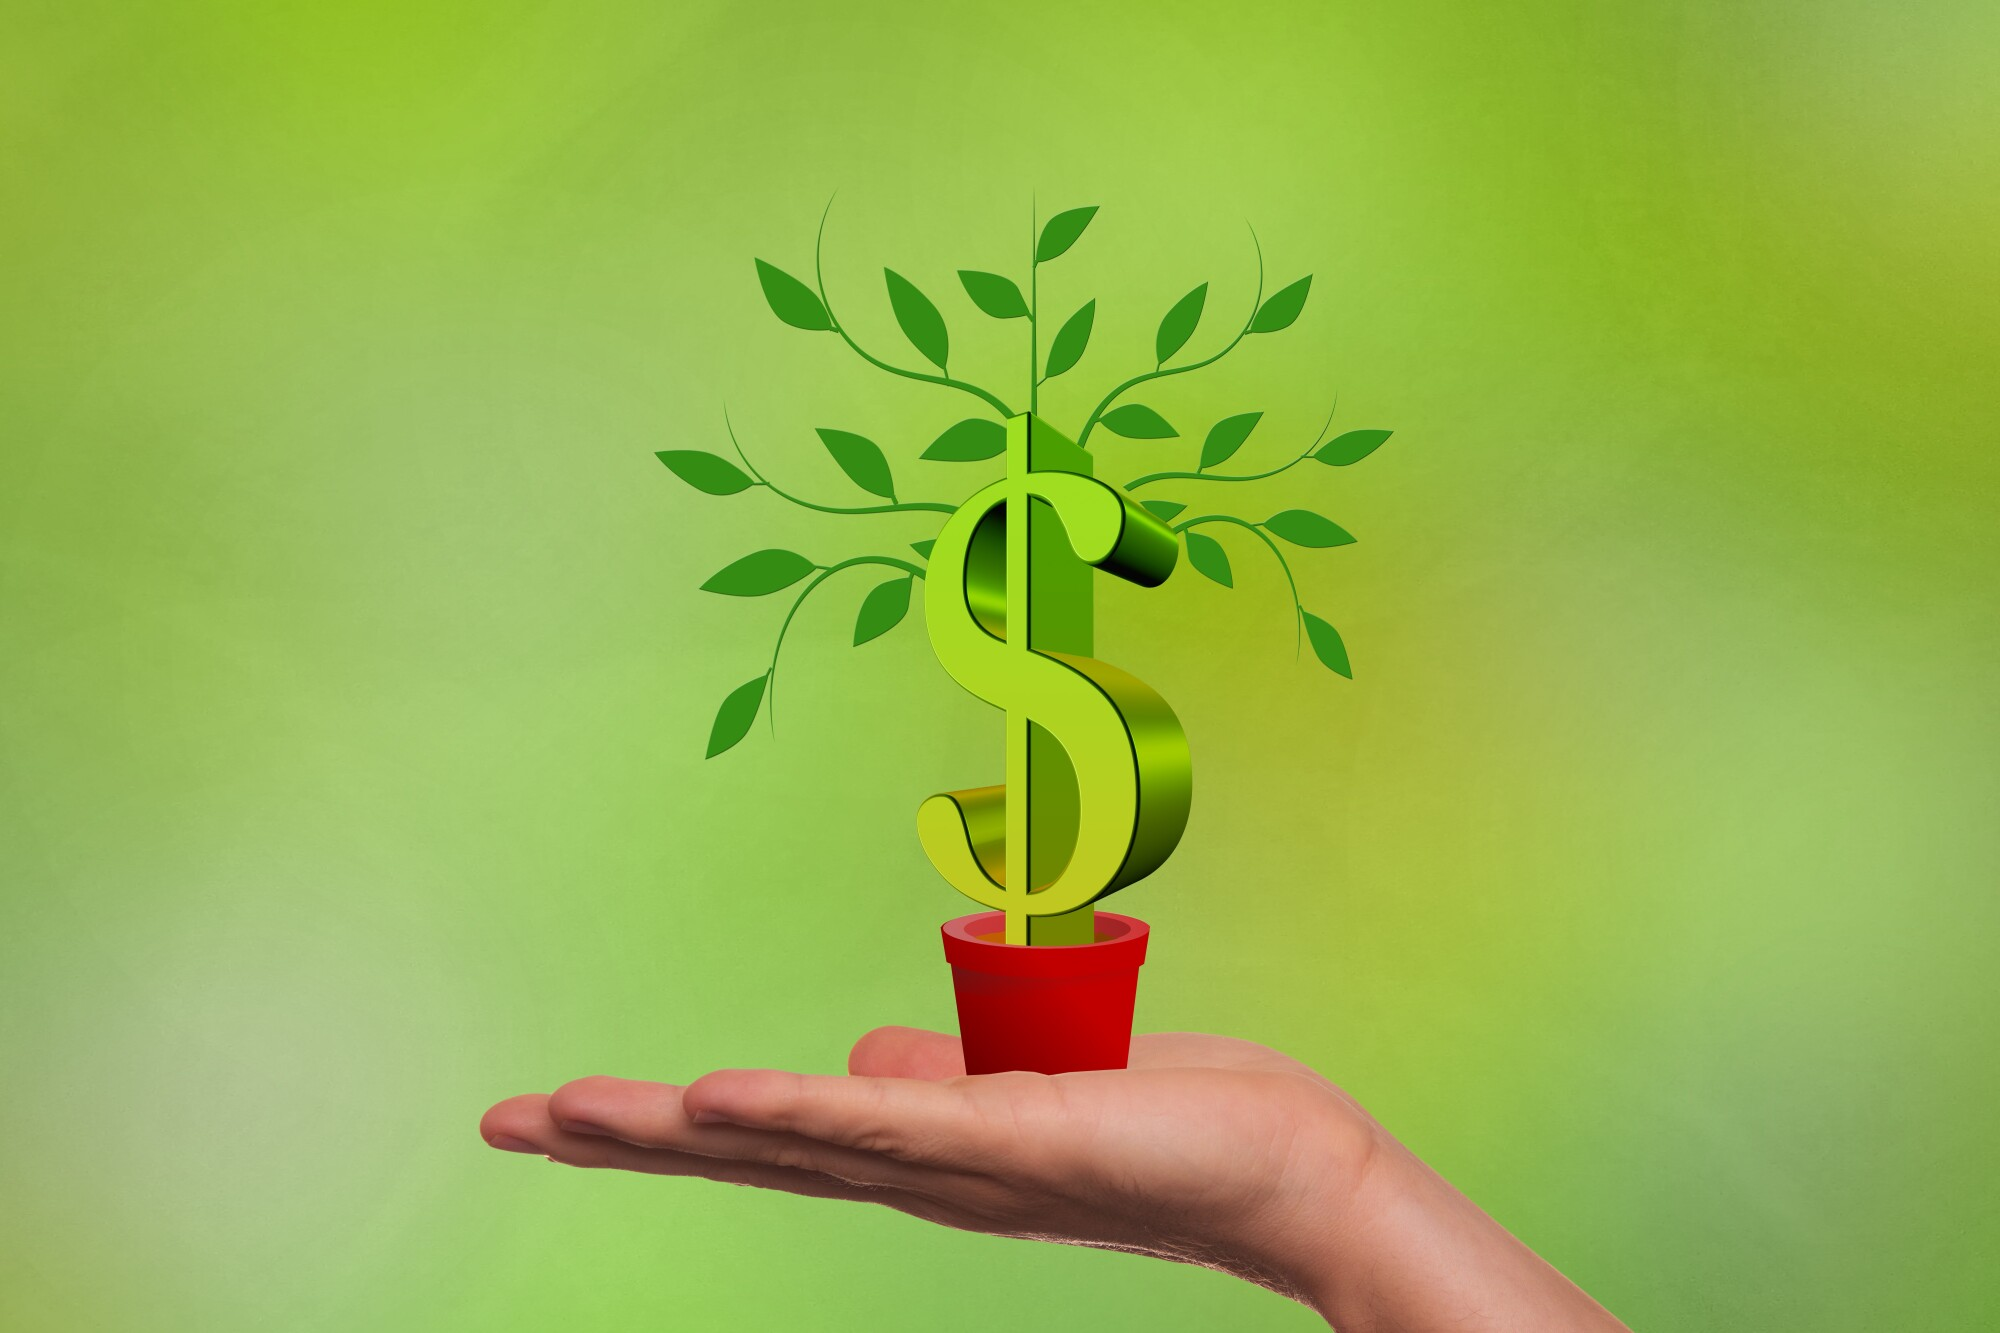 5 Signs Your Business Could Benefit From Growth Capital Services